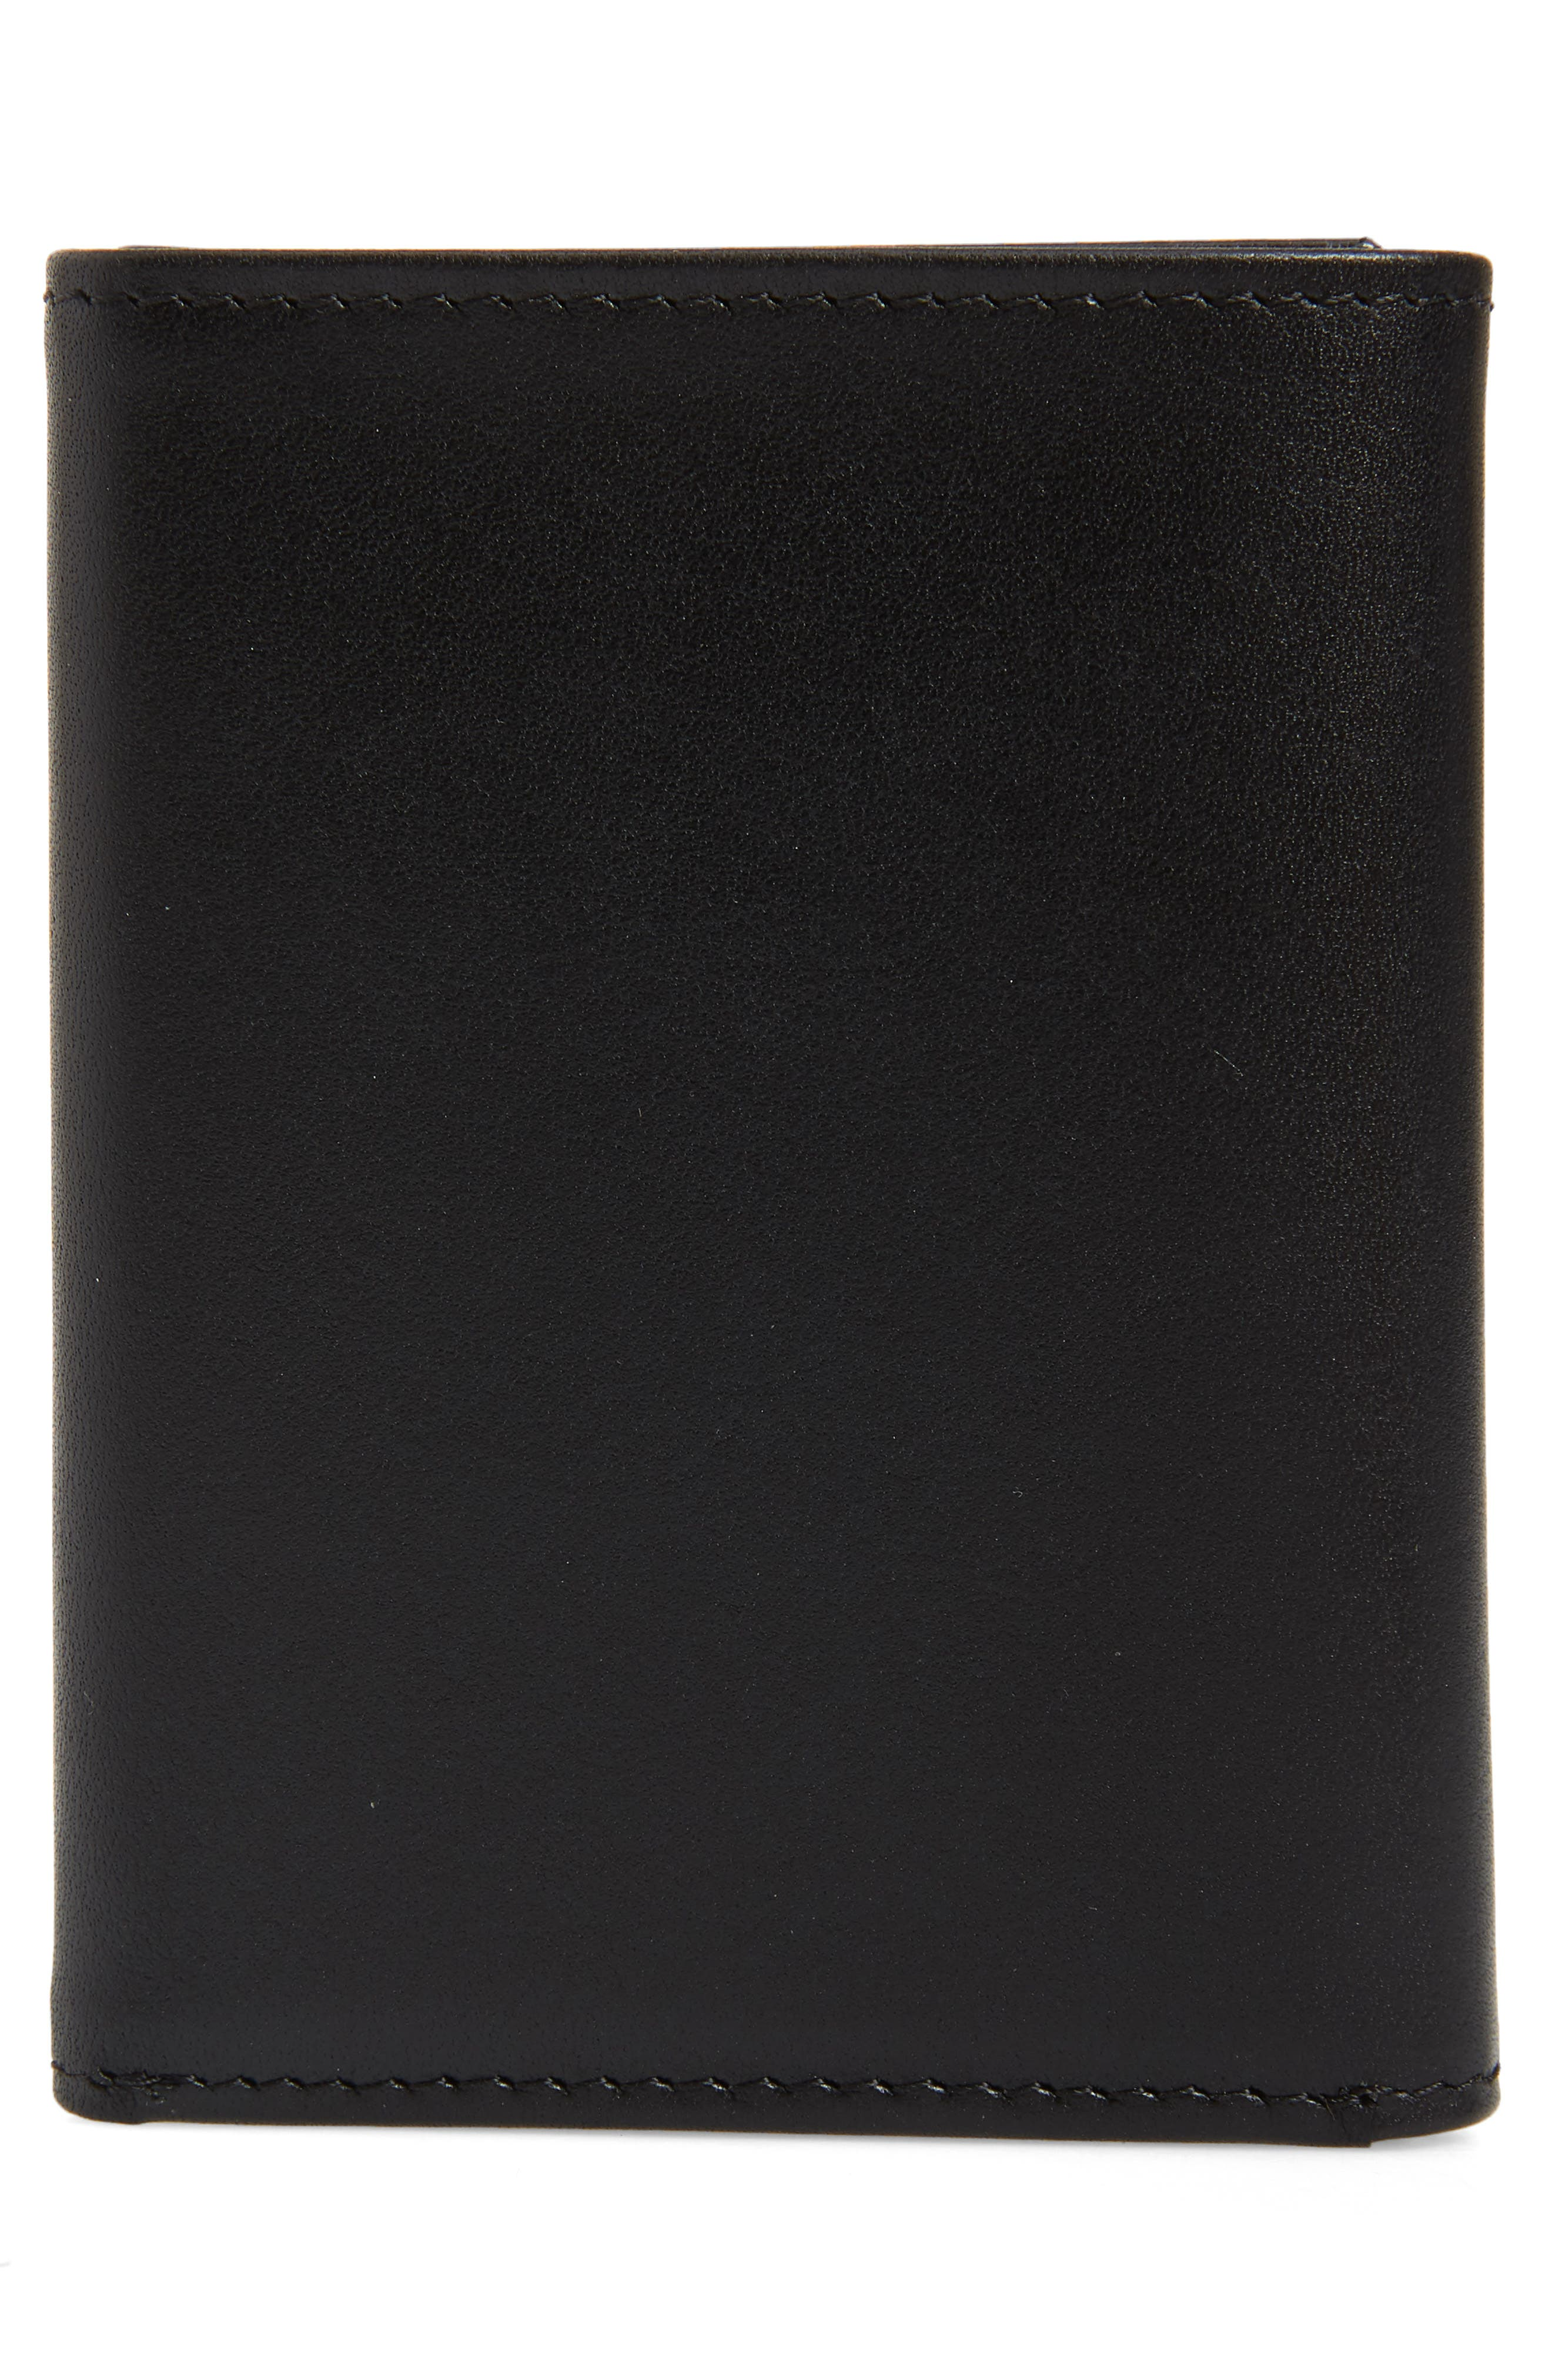 Chelsea Leather Trifold Wallet,                             Alternate thumbnail 3, color,                             BLACK